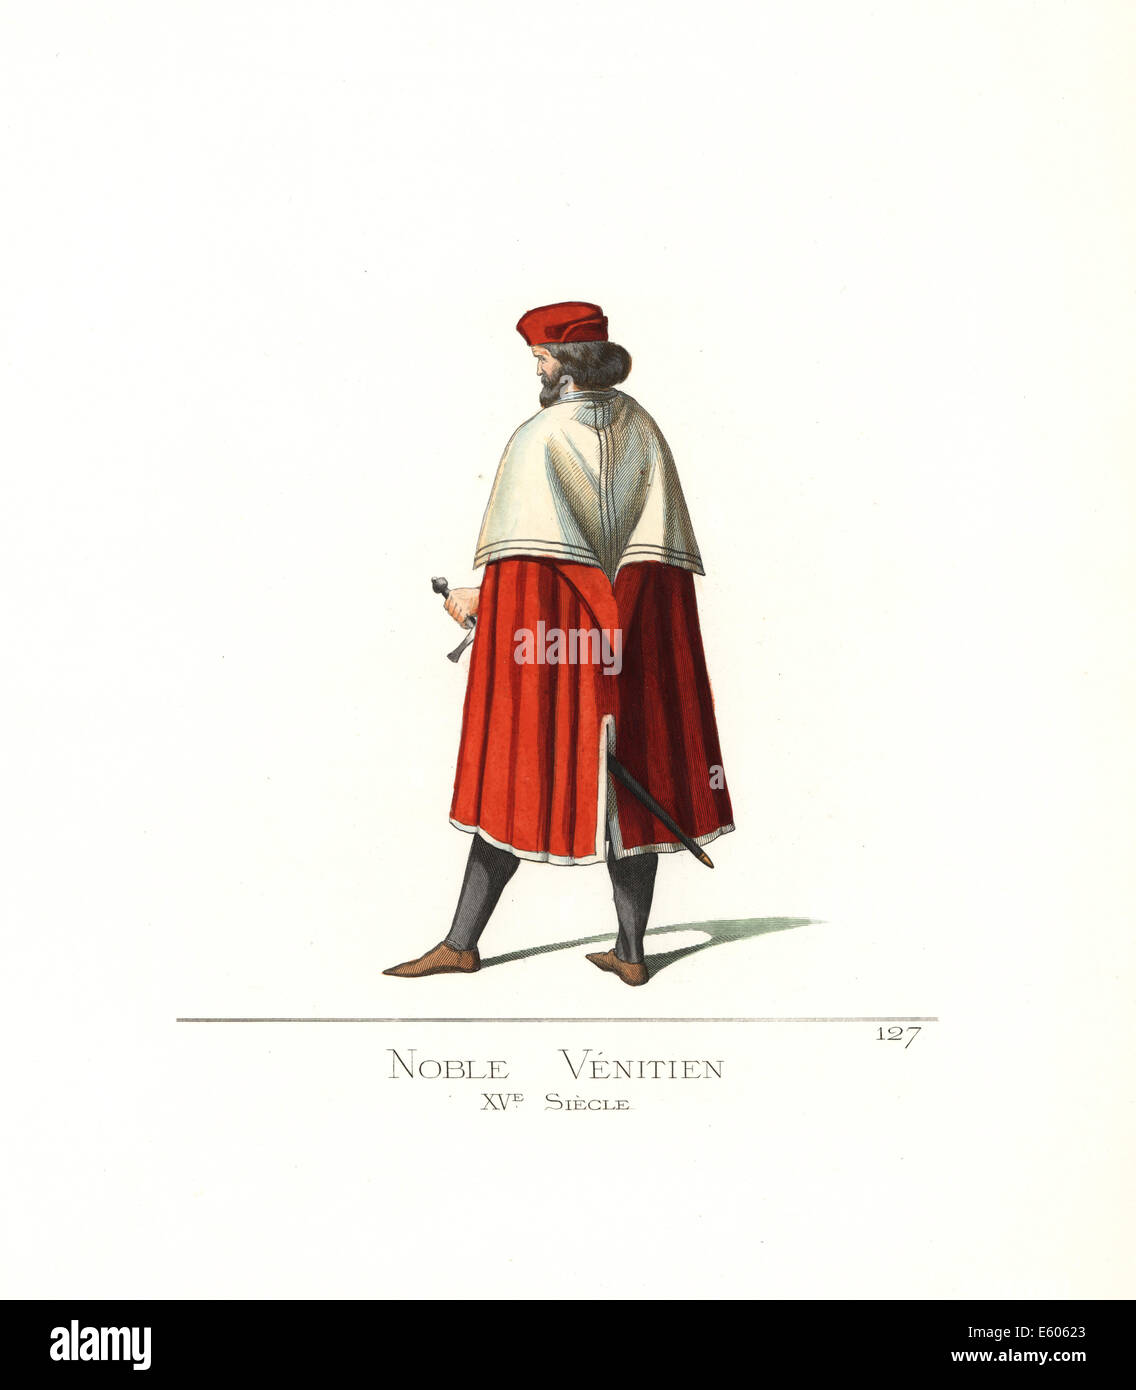 Costume of a Venetian noble man, 15th century. - Stock Image